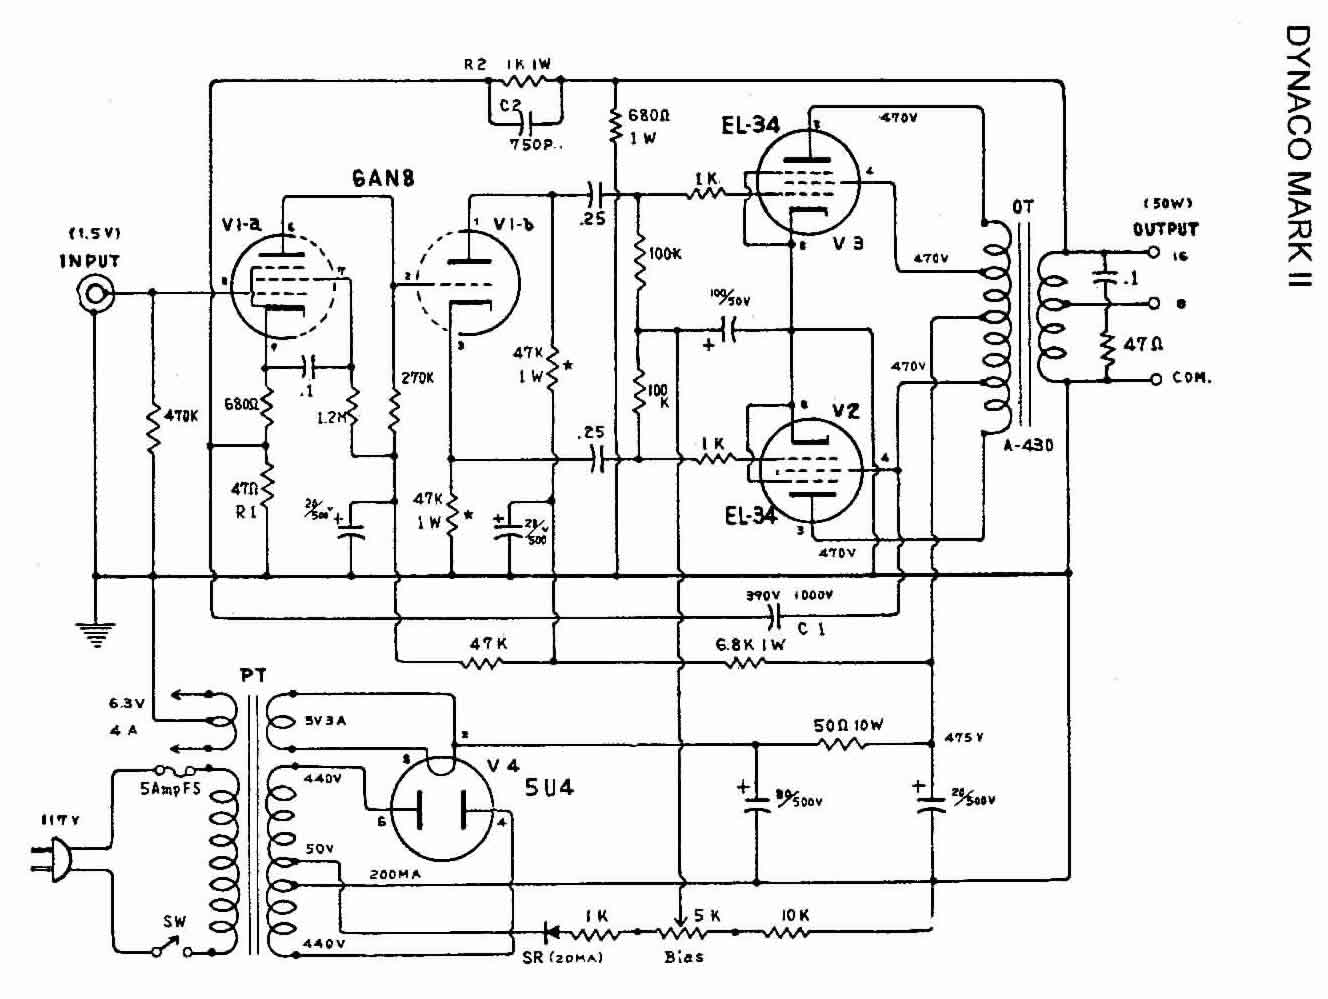 Dynaco Dynakit Mark Iii Tube Amplifier Schematic Auto Electrical Modified Williamson Ampslabcom